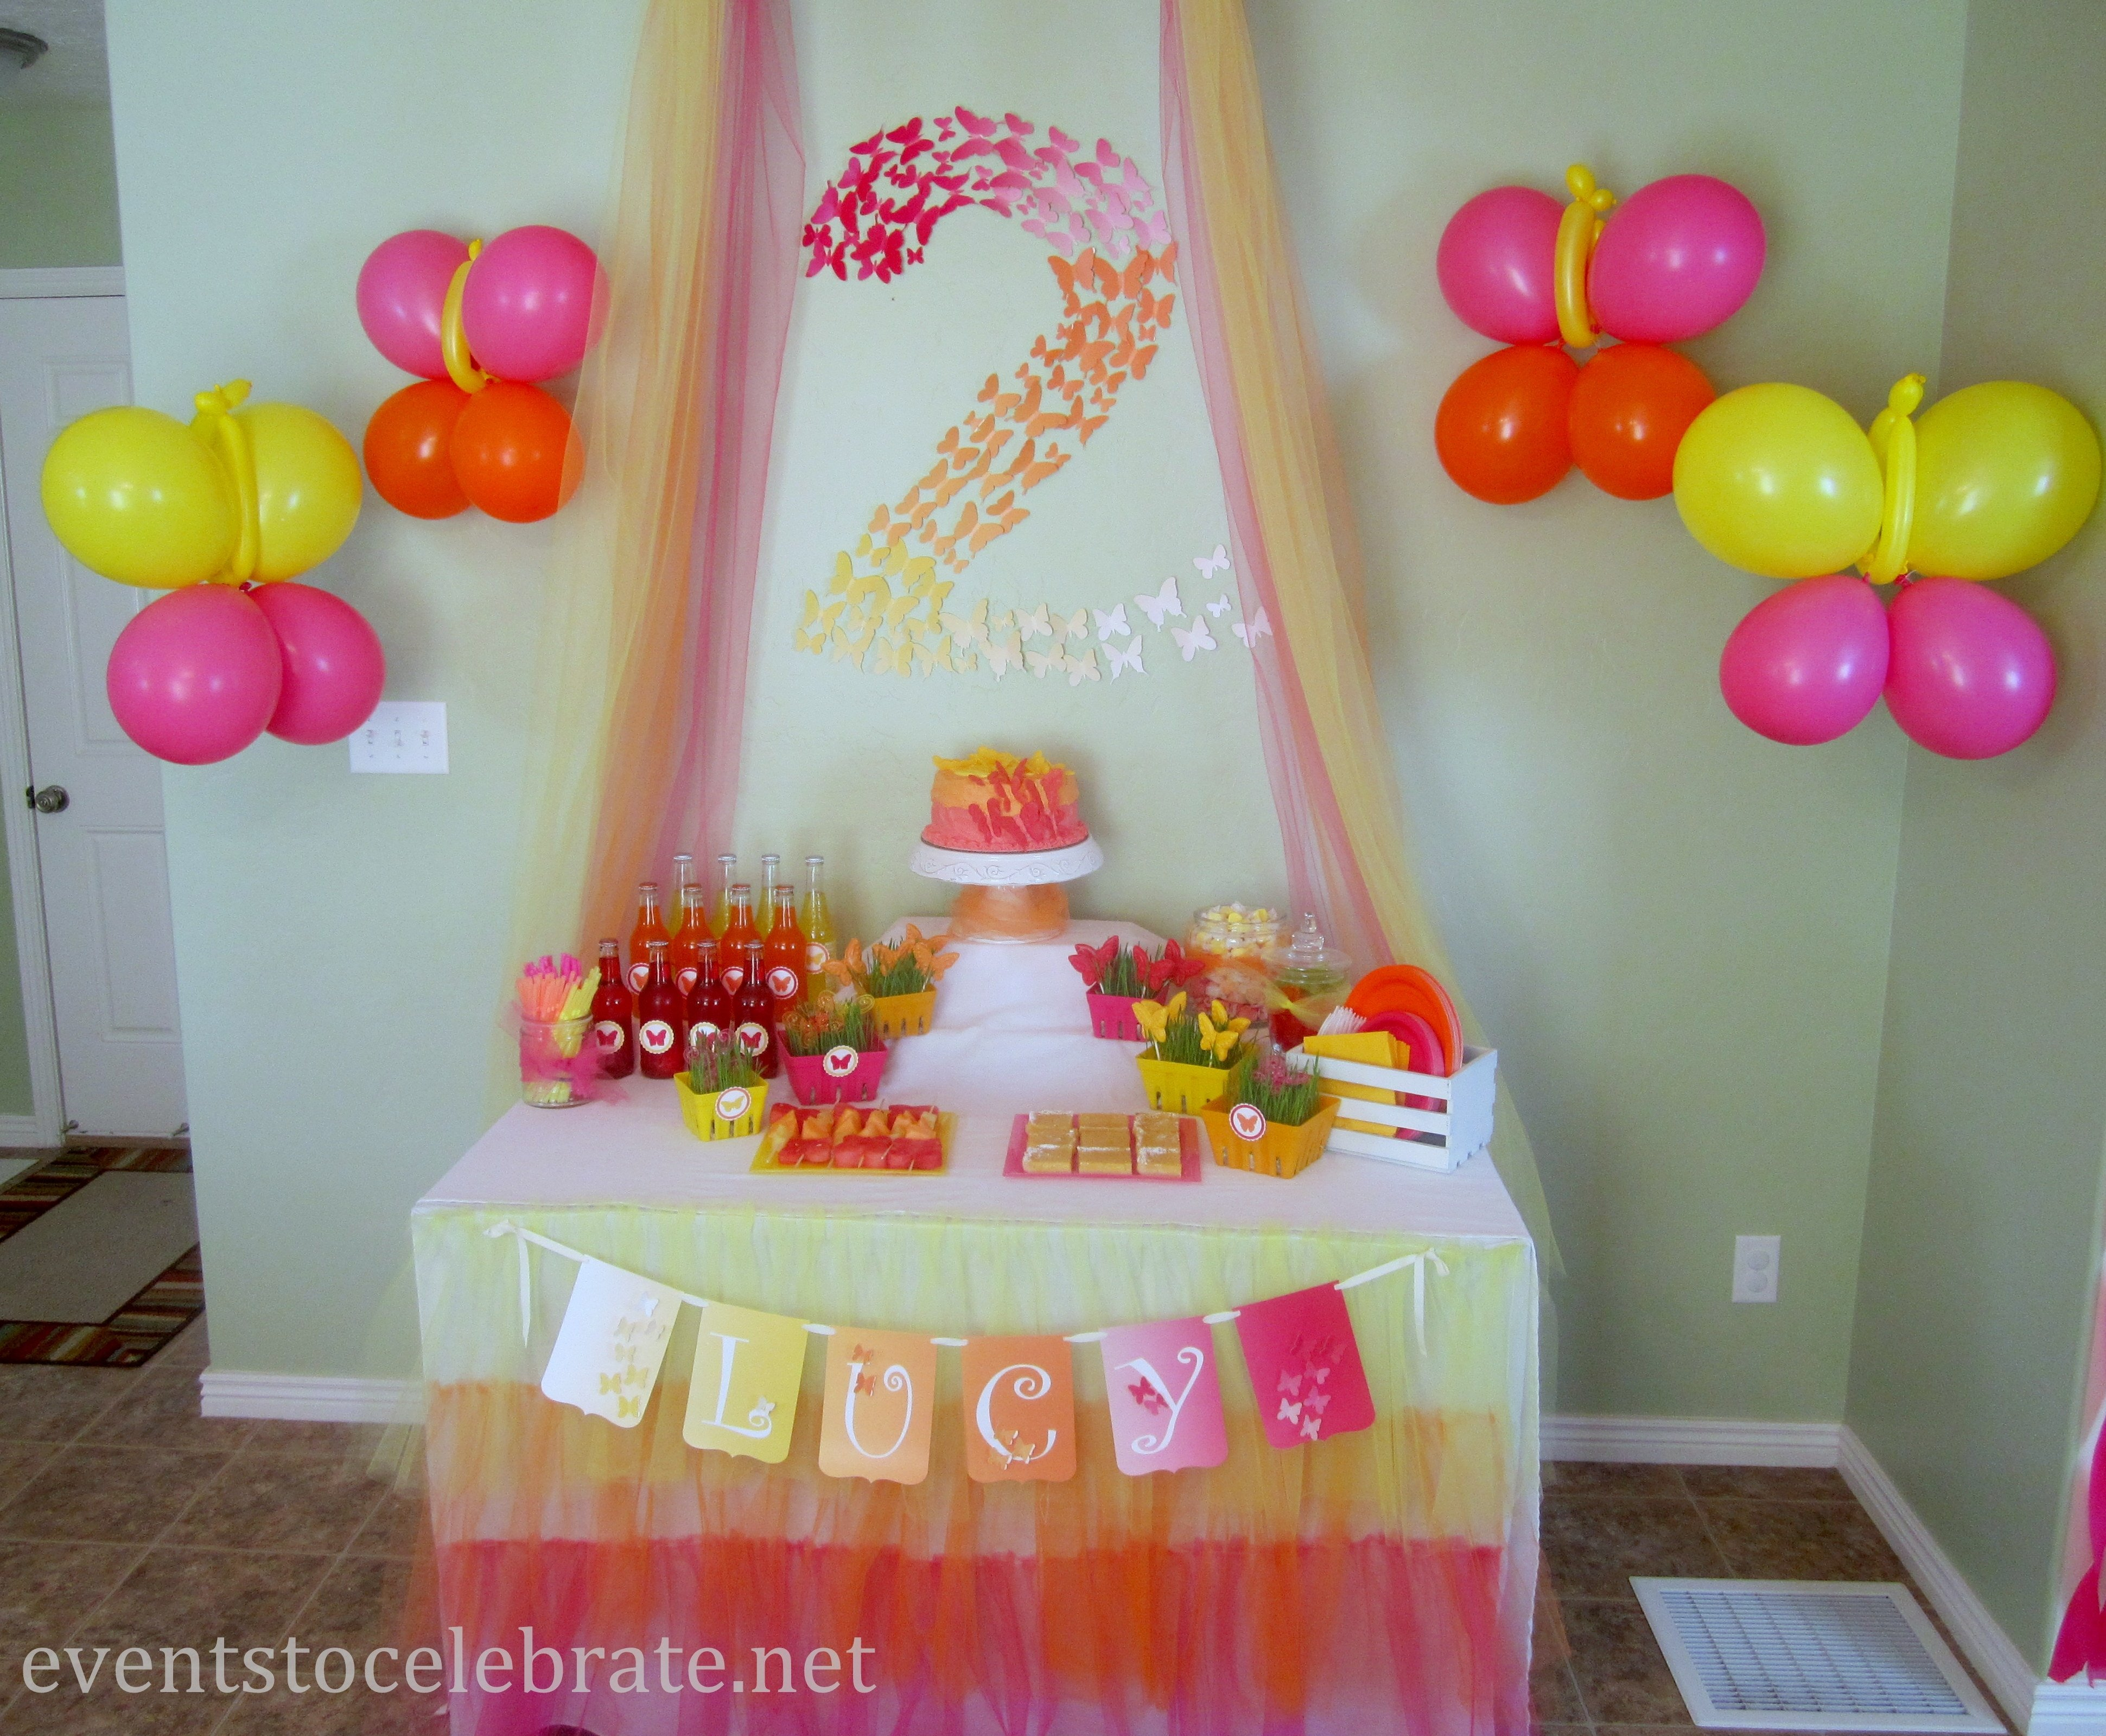 10 Stunning Decorating Ideas For A Birthday Party 18 unique birthday party decoration ideas at home dma homes 57067